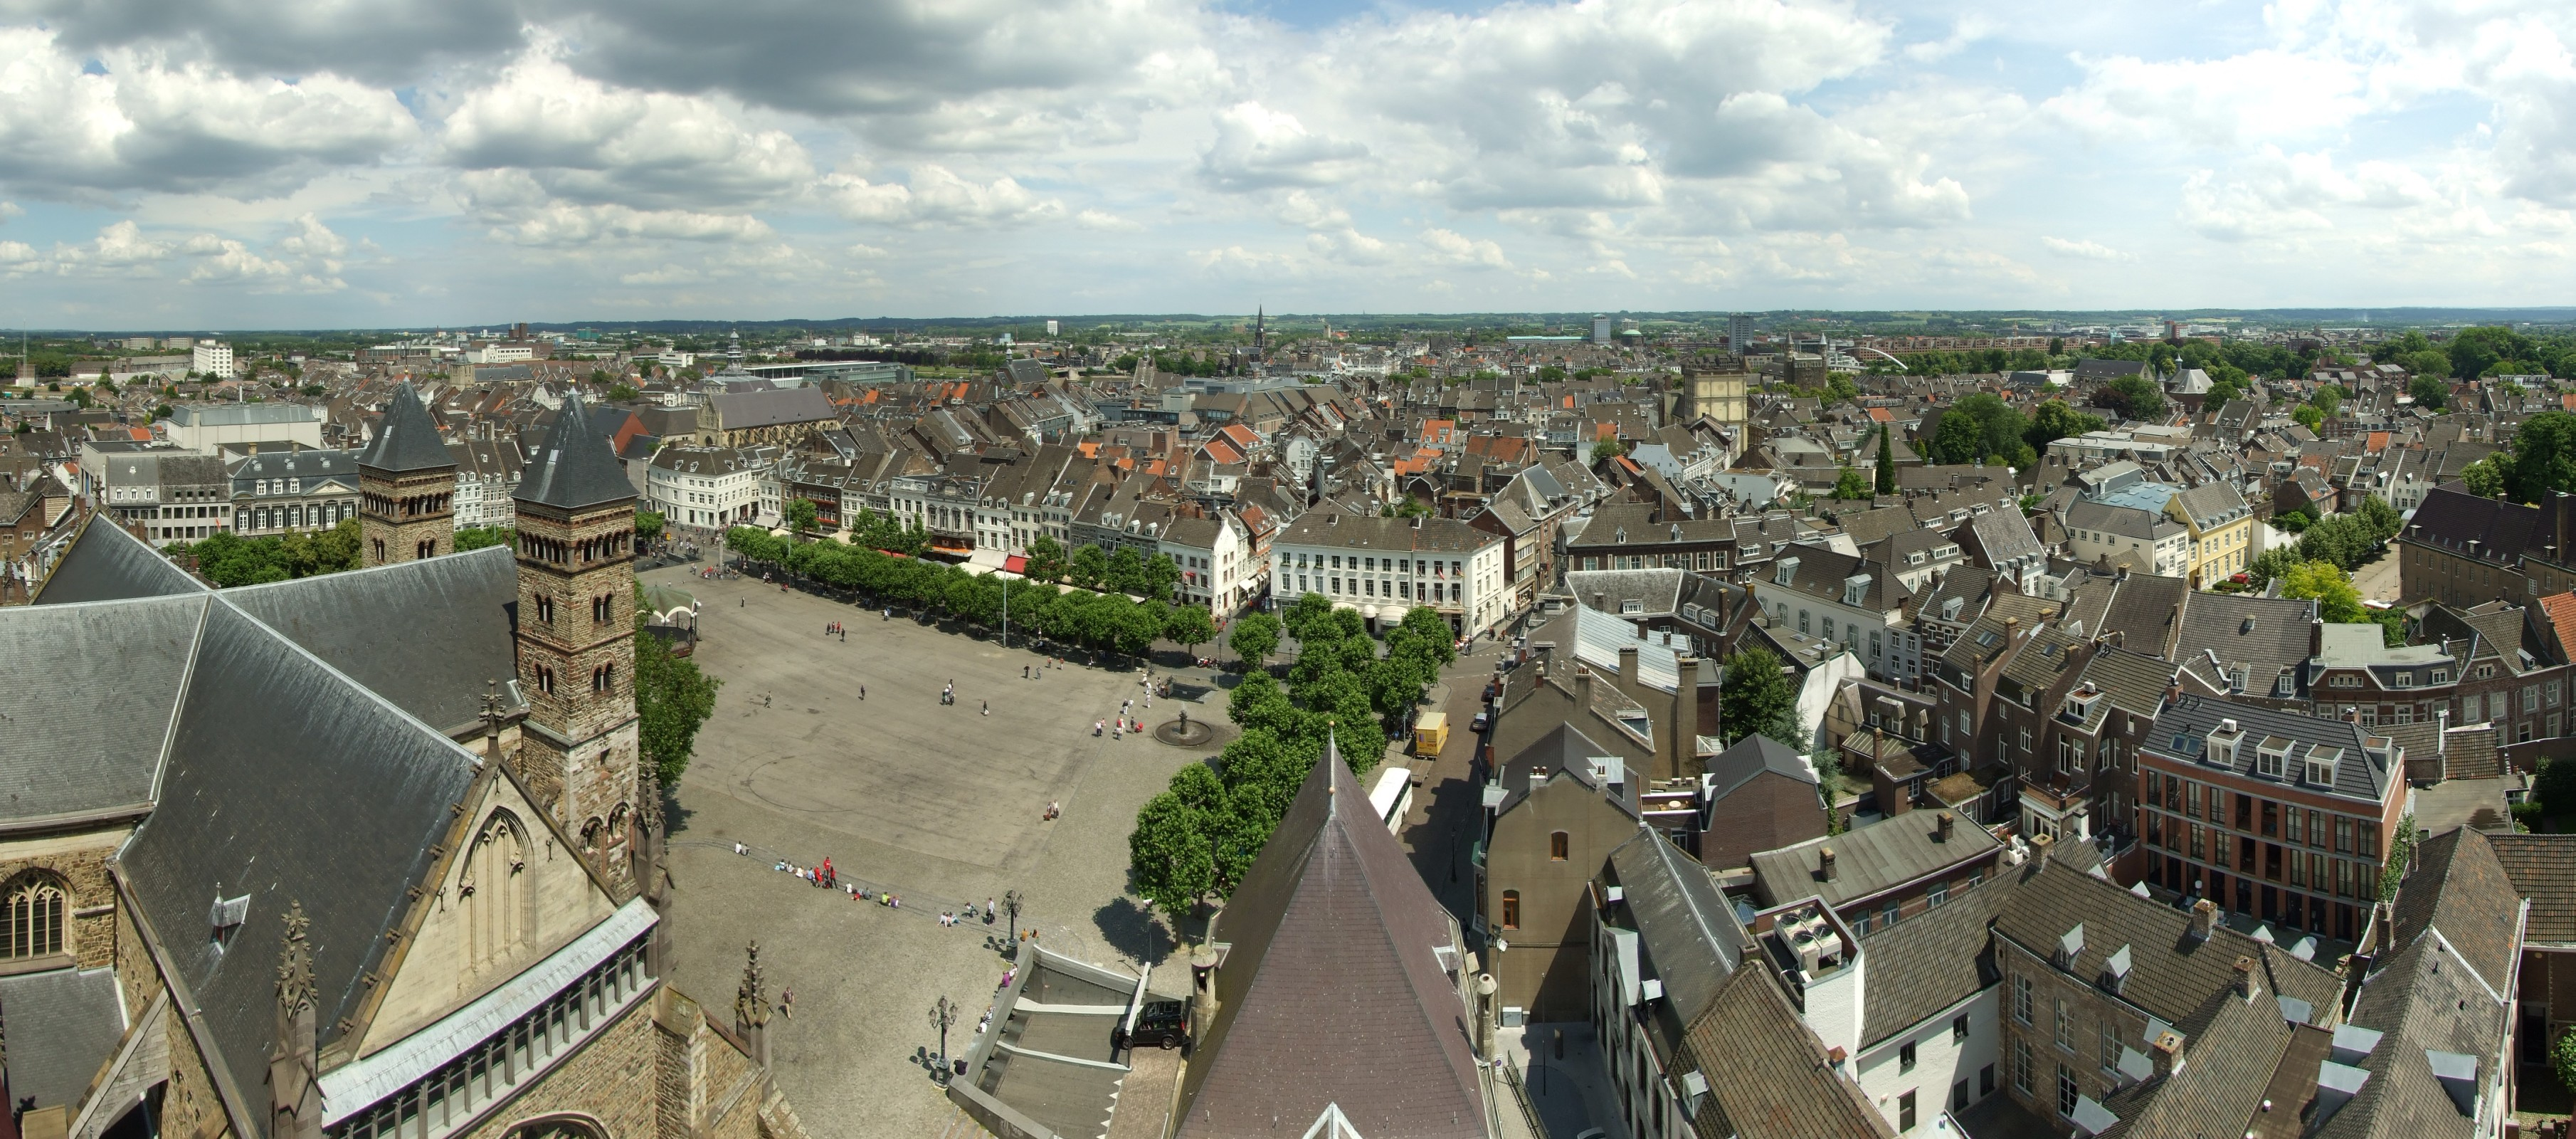 Maastricht skyline, from the church tower